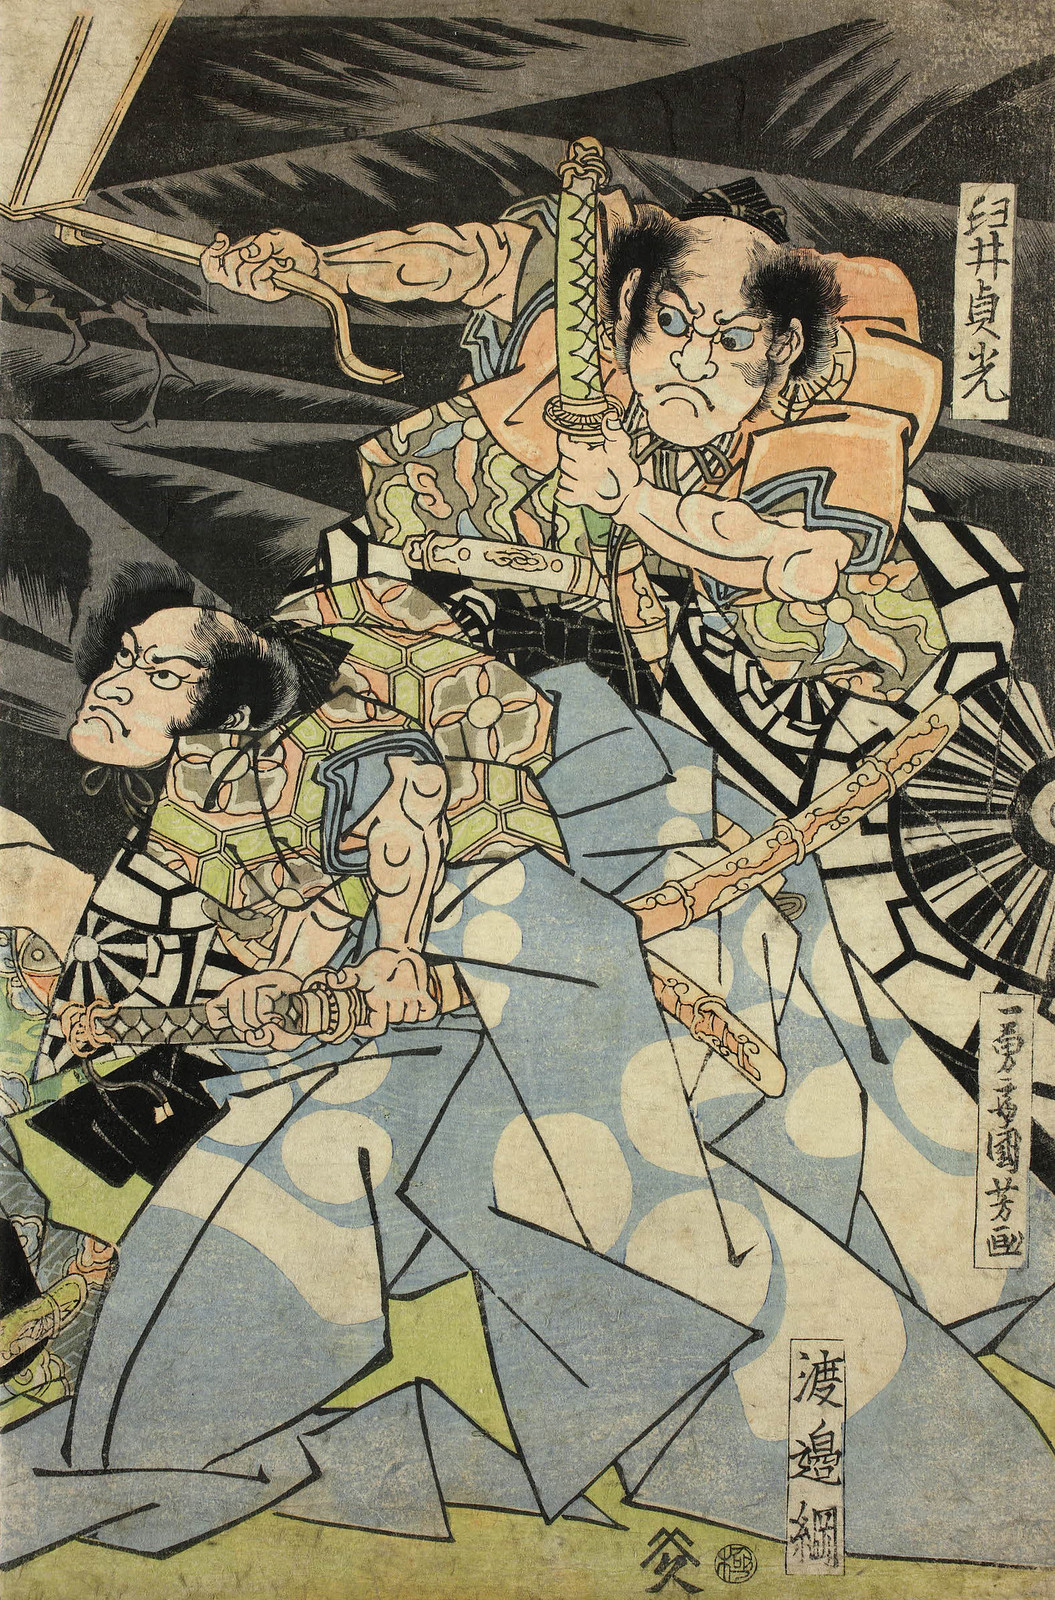 Utagawa Kuniyoshi - Minamoto no Yorimitsu fighting demon spider, with Usui no Sadamitsu, Watanabe no Tsuna, Urabe no Suetake with Sakata Kintoki with go-board. 18th c (right panel)